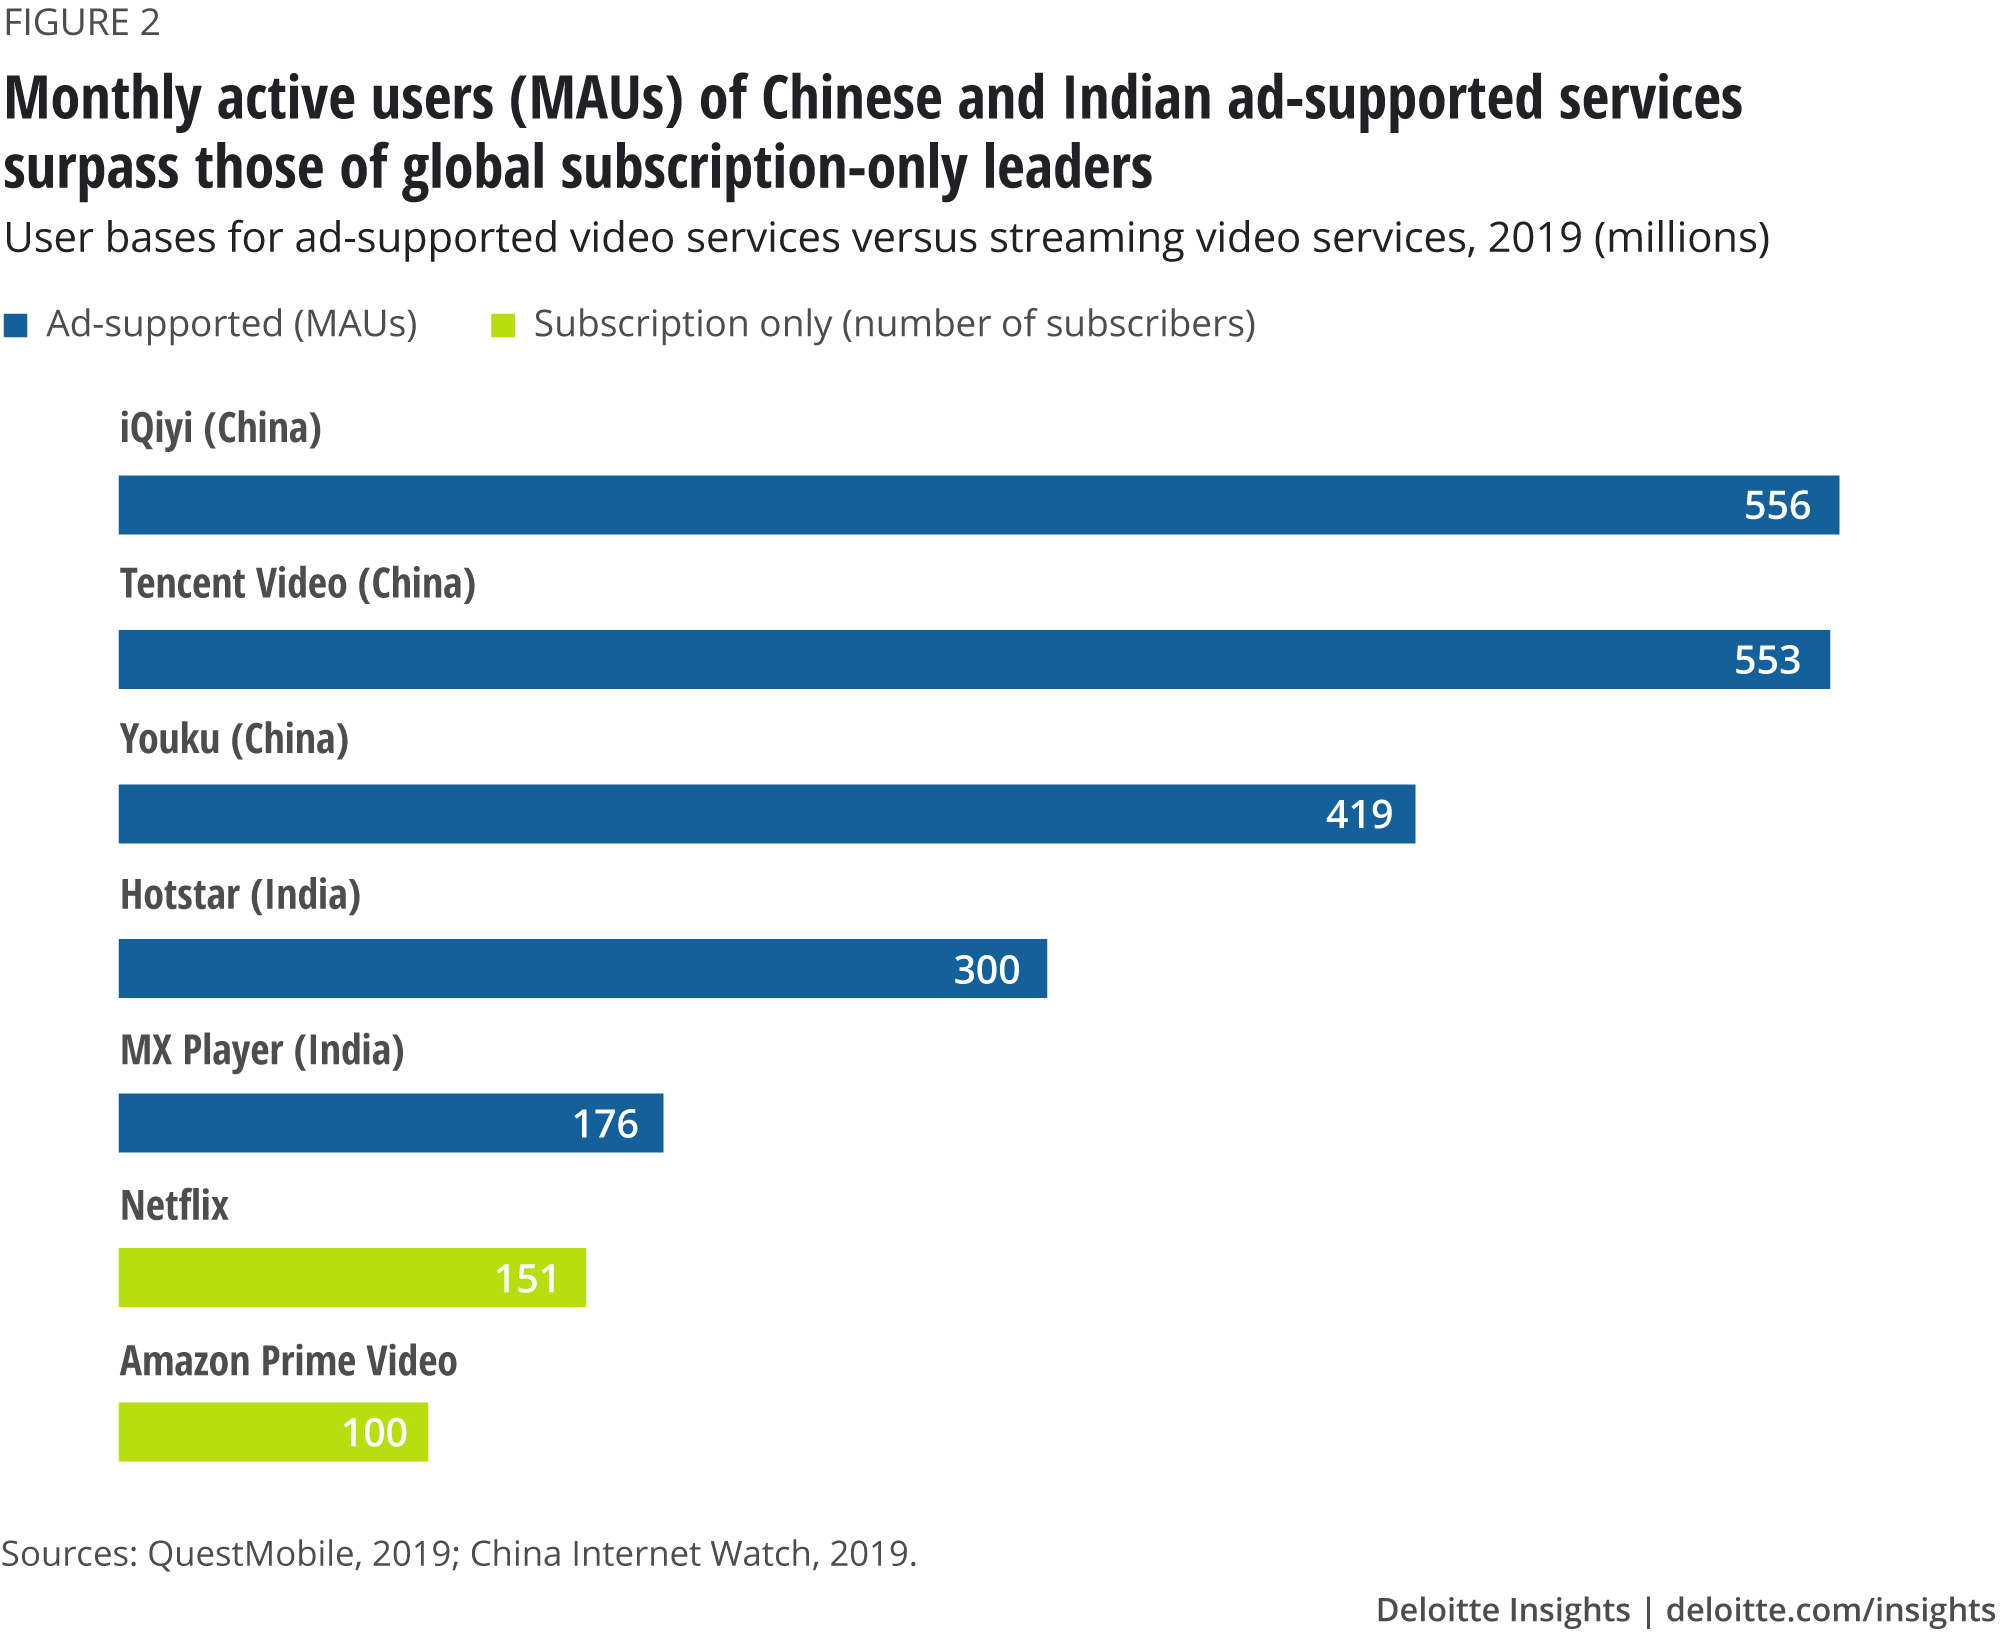 Monthly active users (MAUs) of Chinese and Indian ad-supported services surpass those of global subscription-only leaders